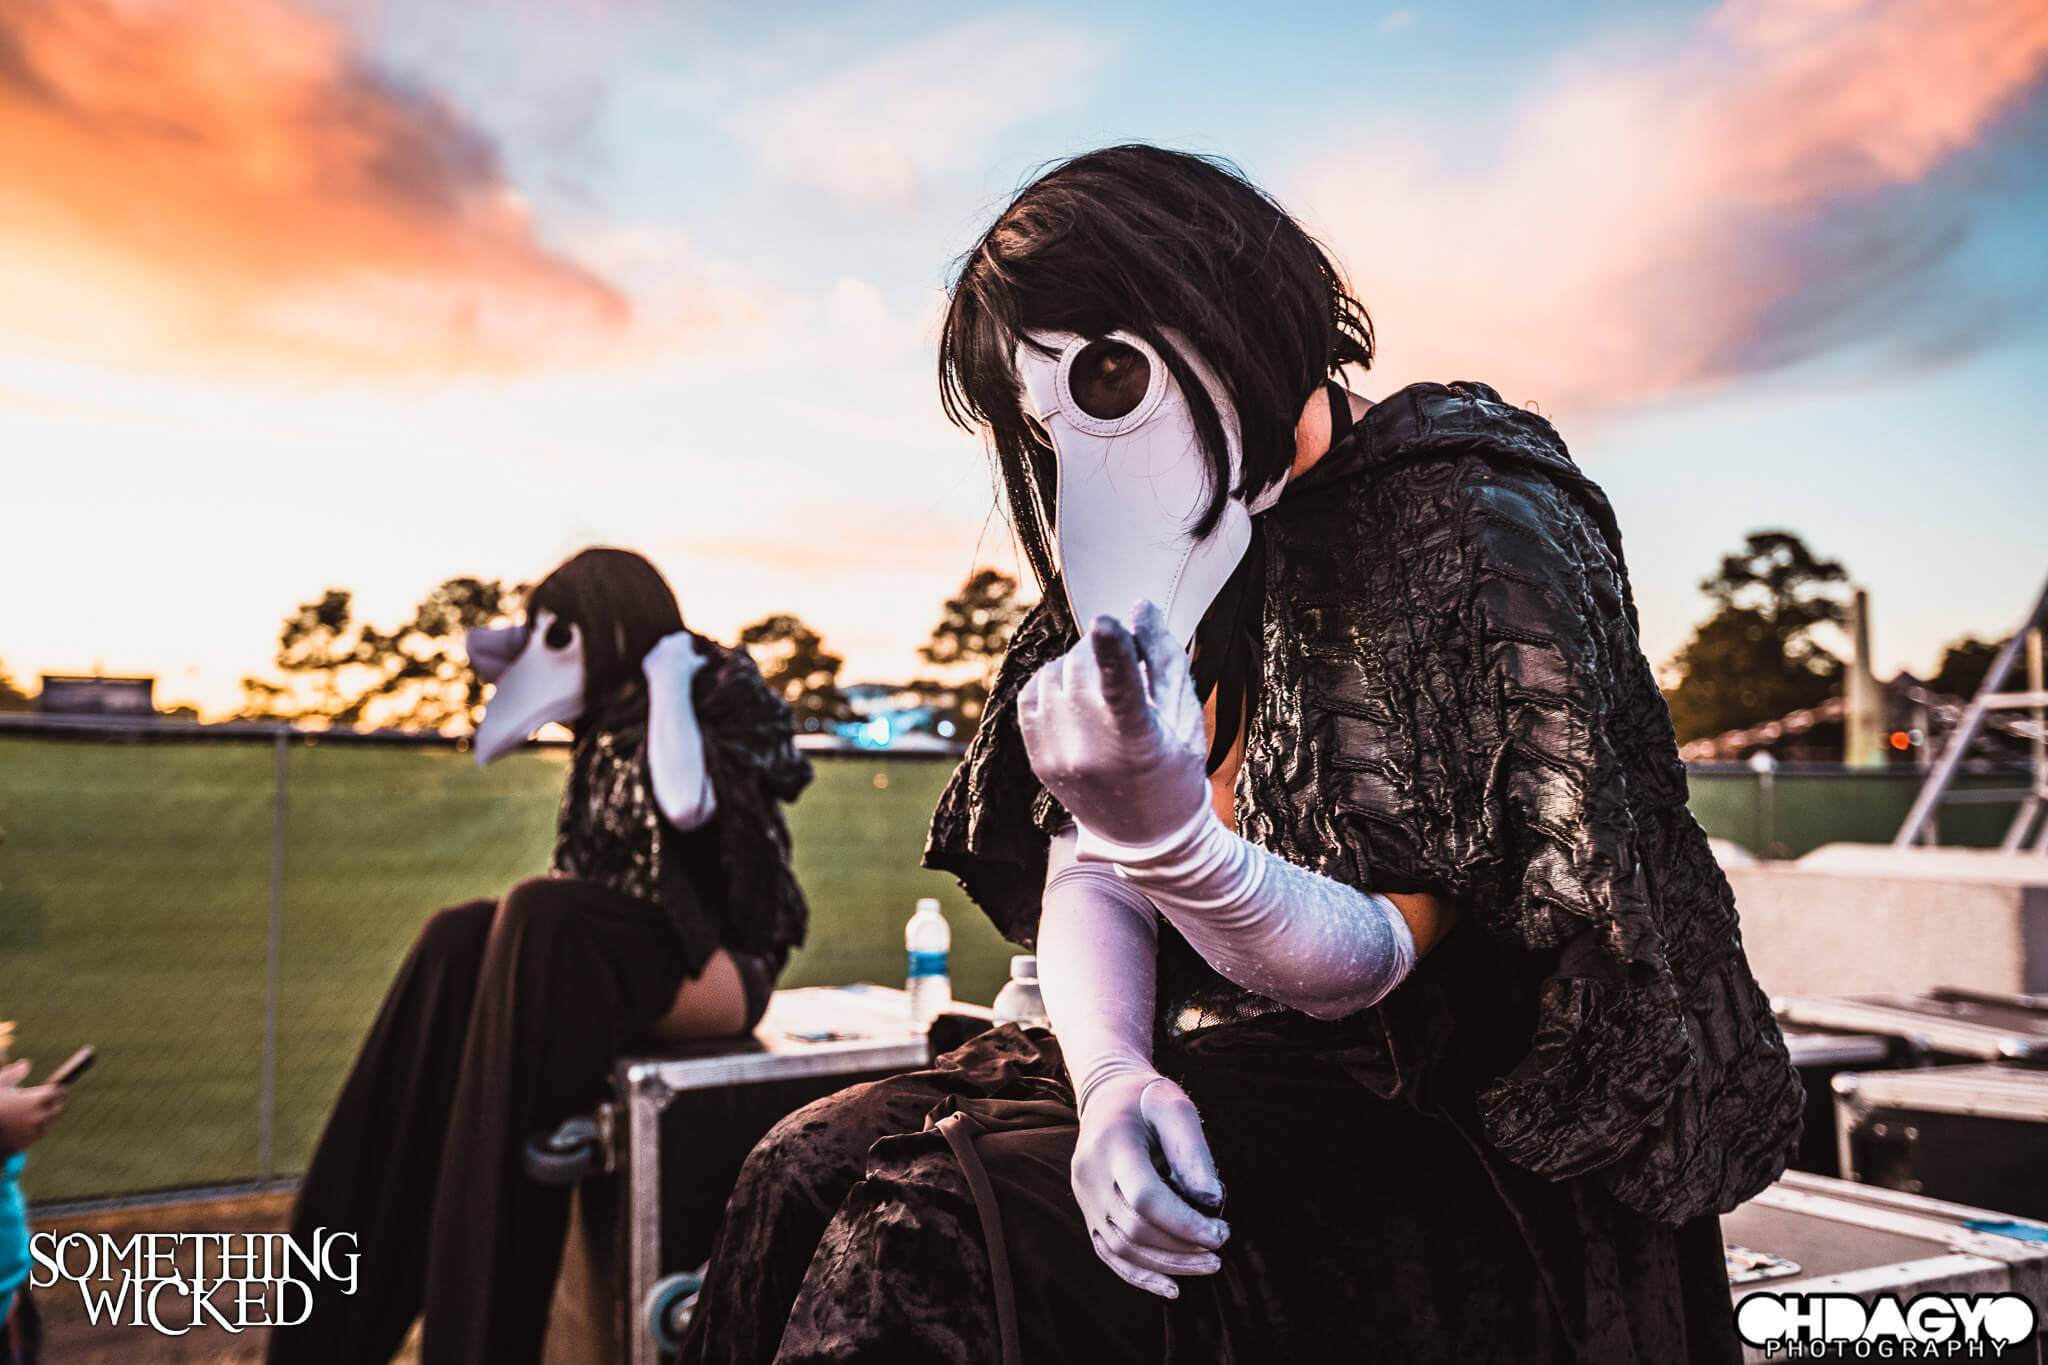 wicked festival performer